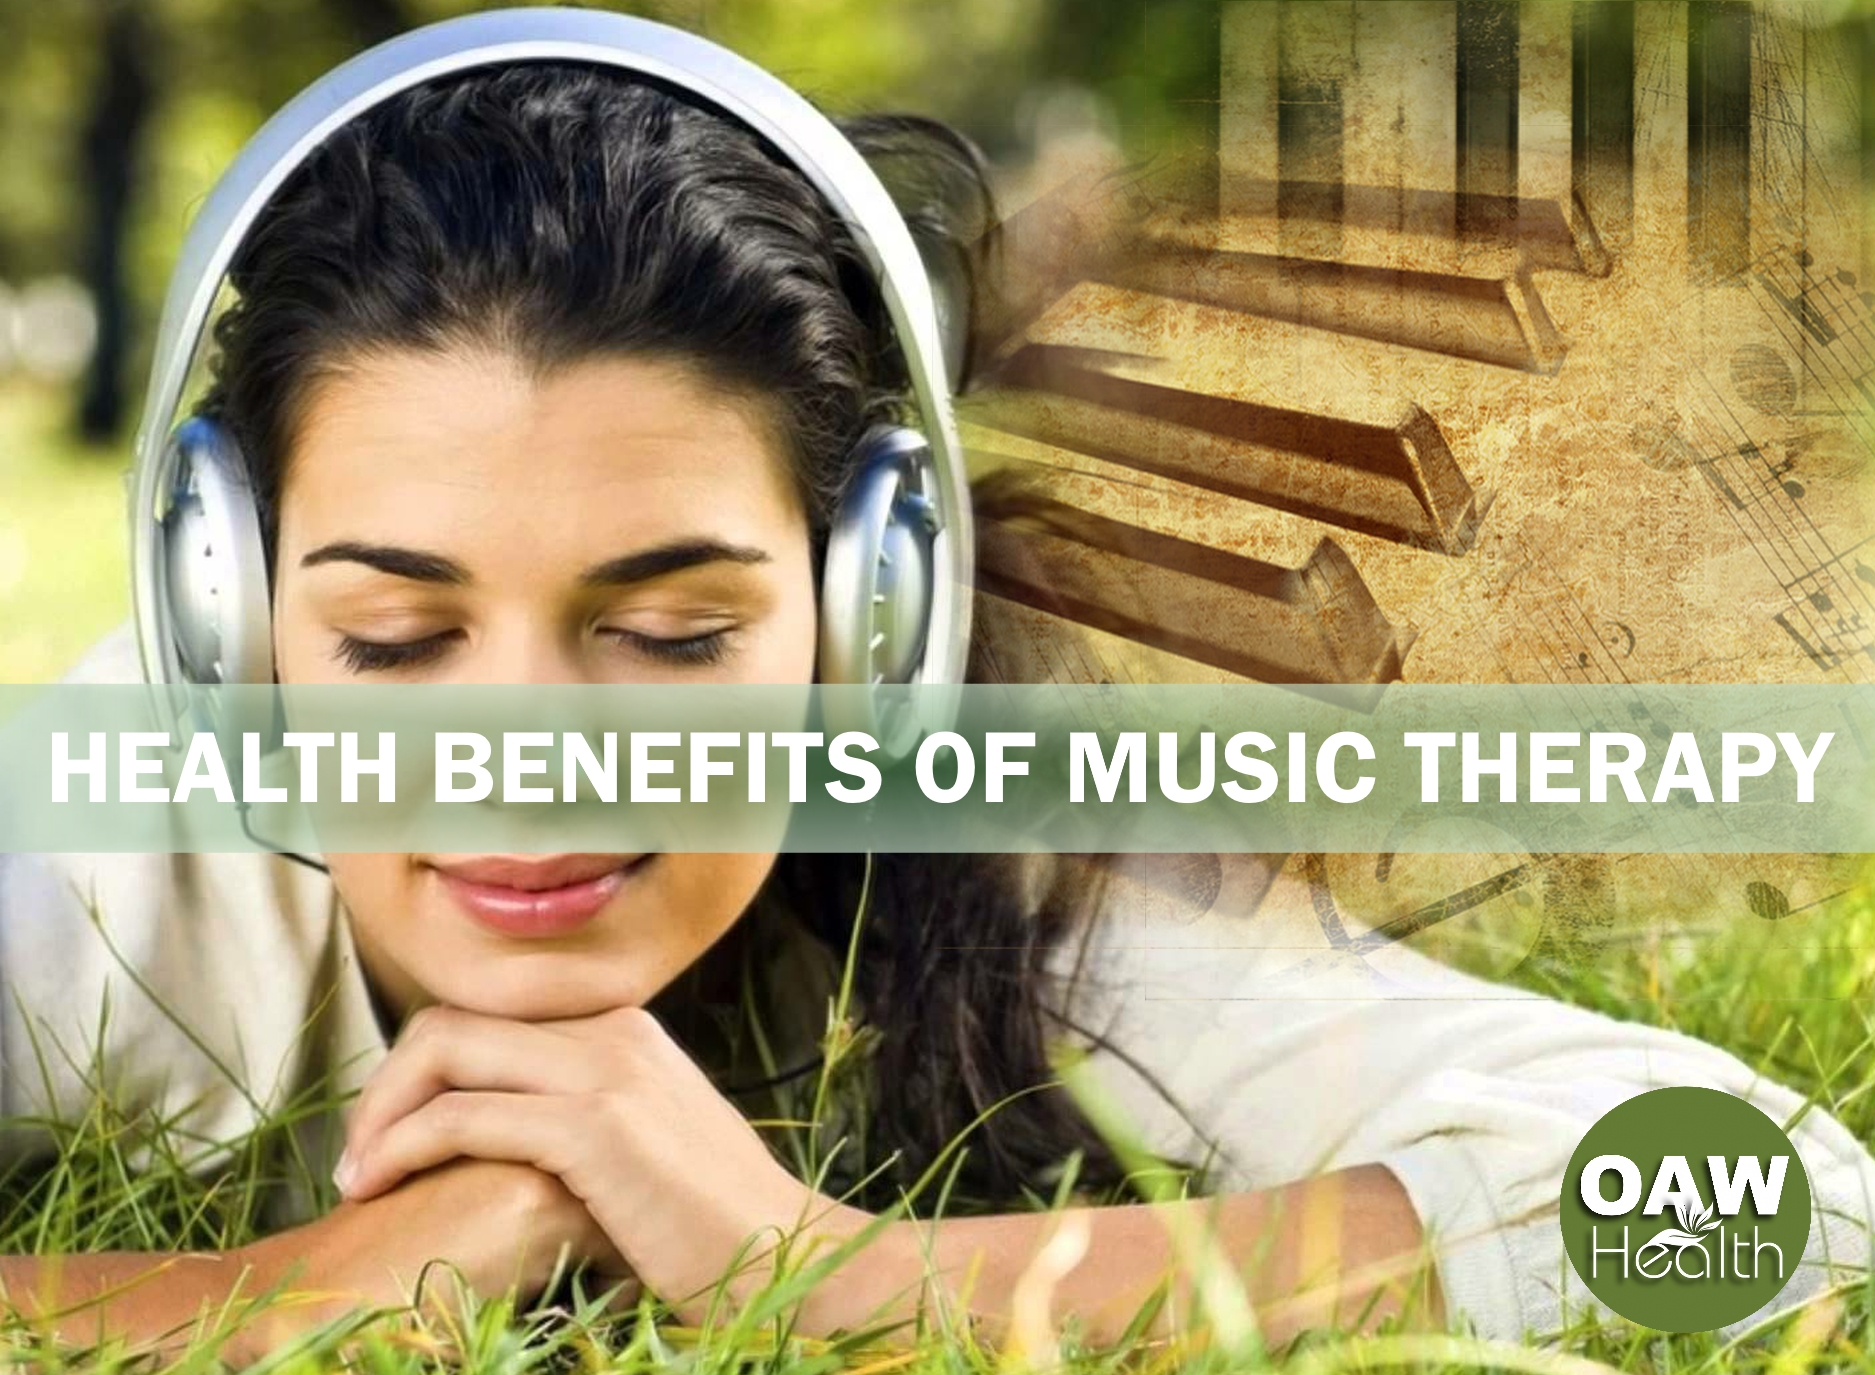 Health Benefits of Music Therapy